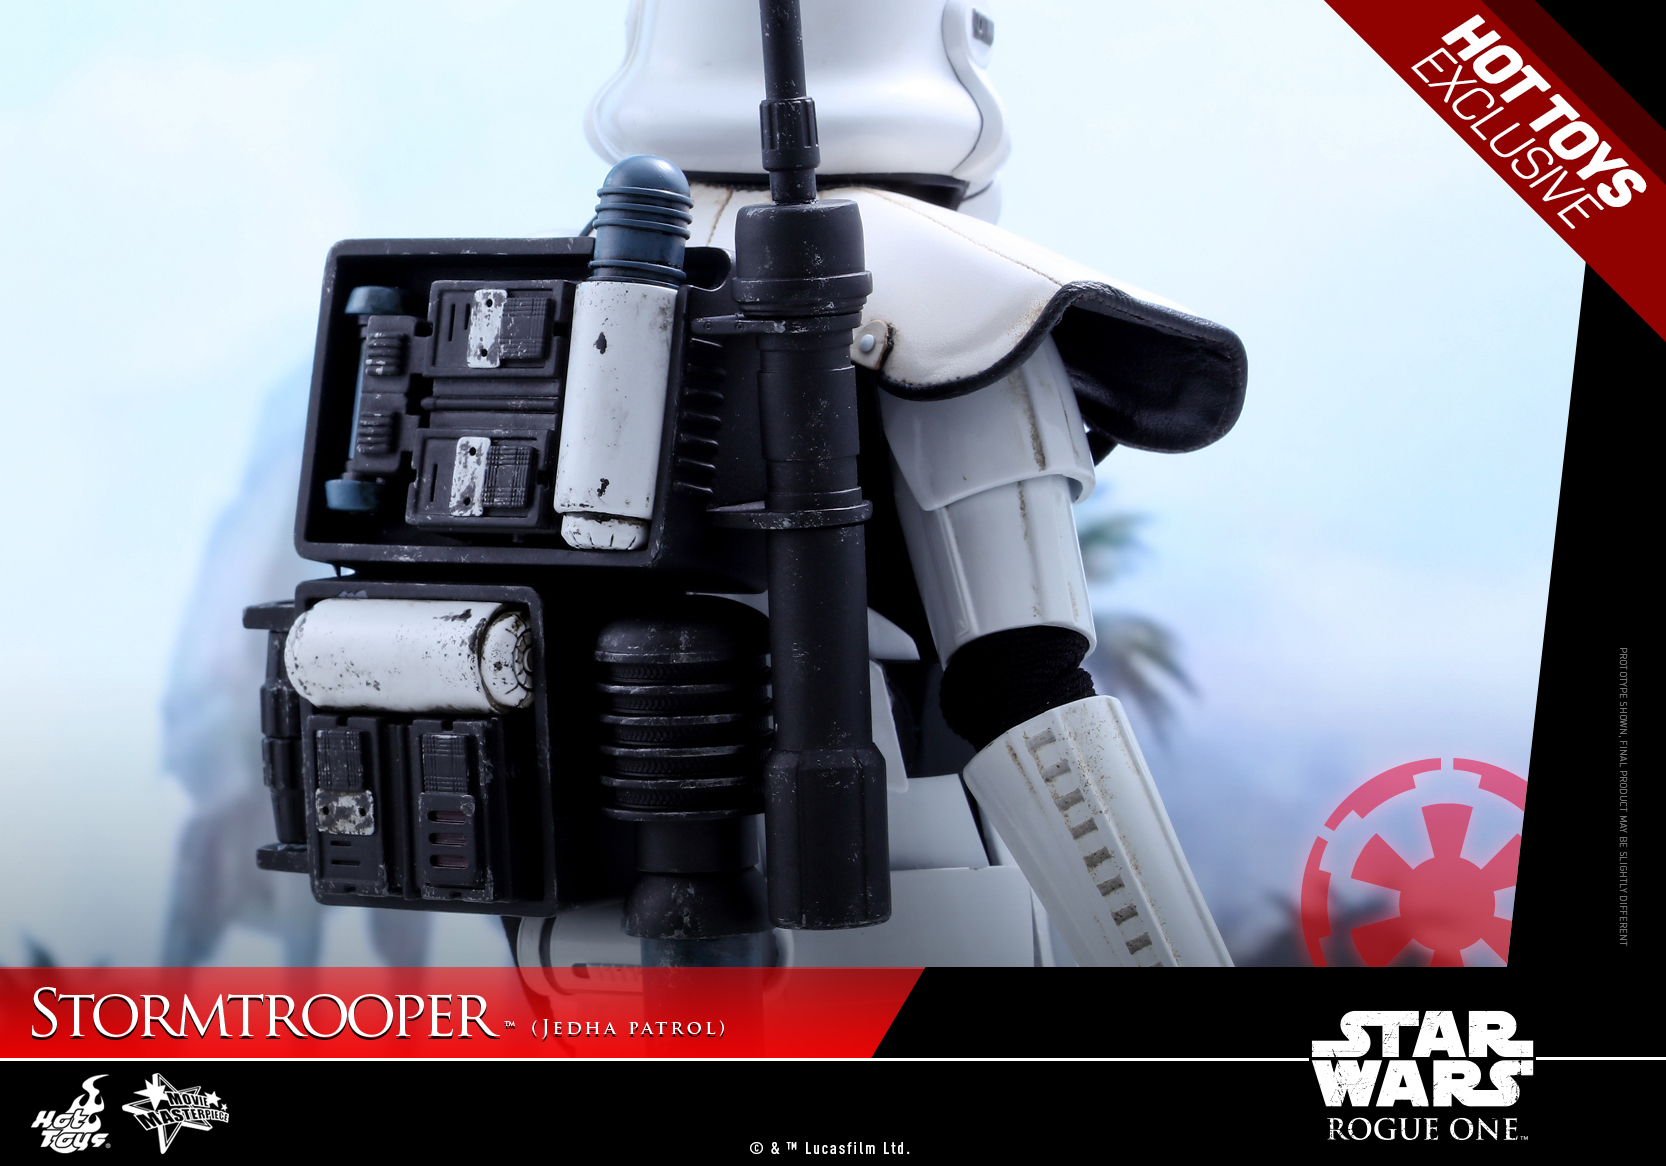 201609_hot-toys-rogue-one-stormtrooper-jedha-patrol-collectible-3